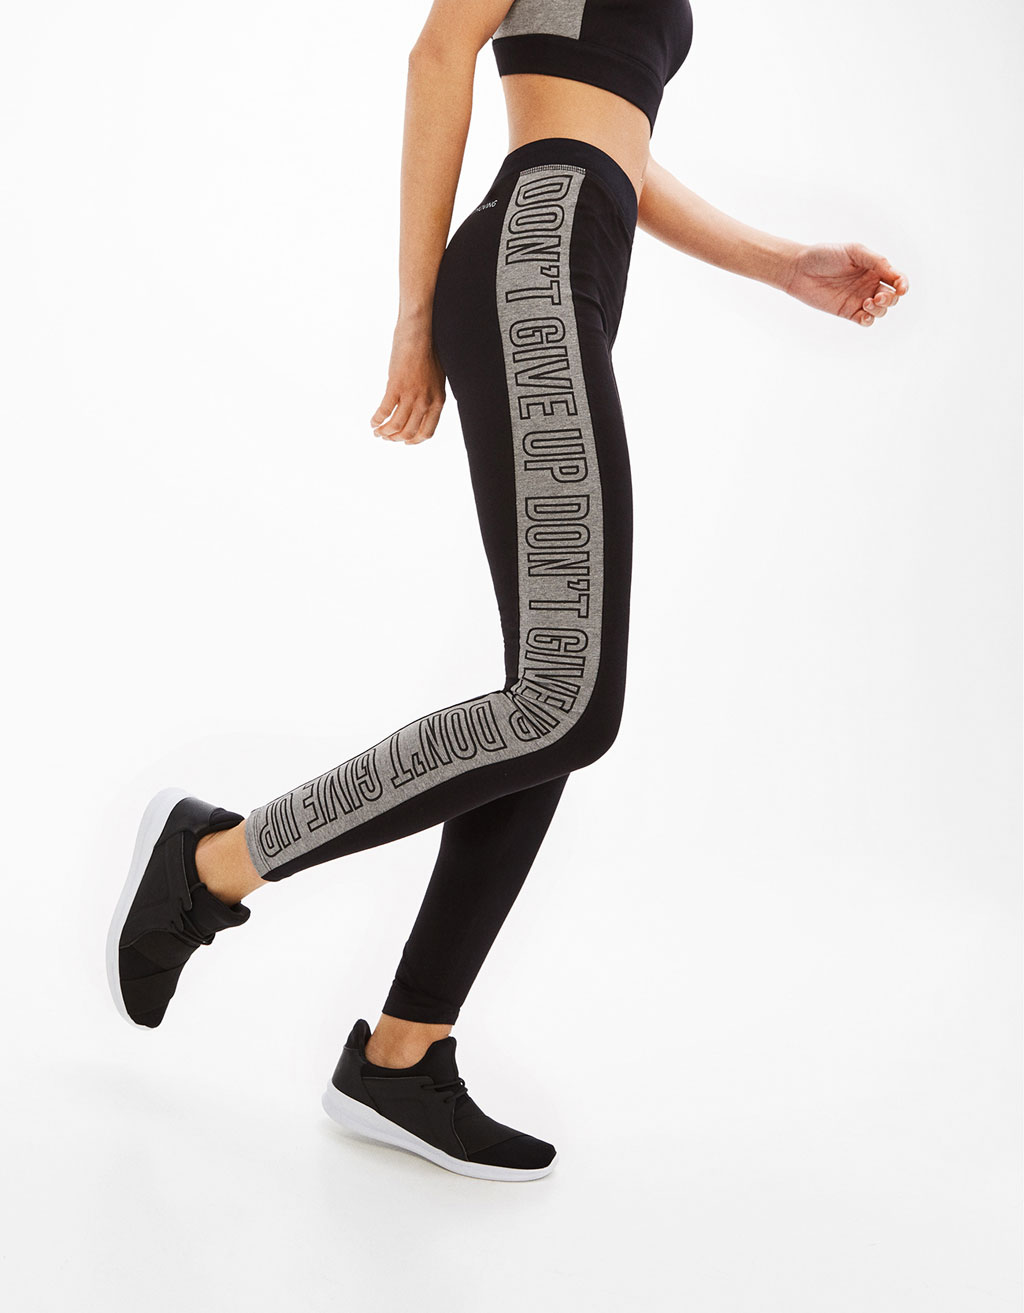 'Don't give up' sports leggings